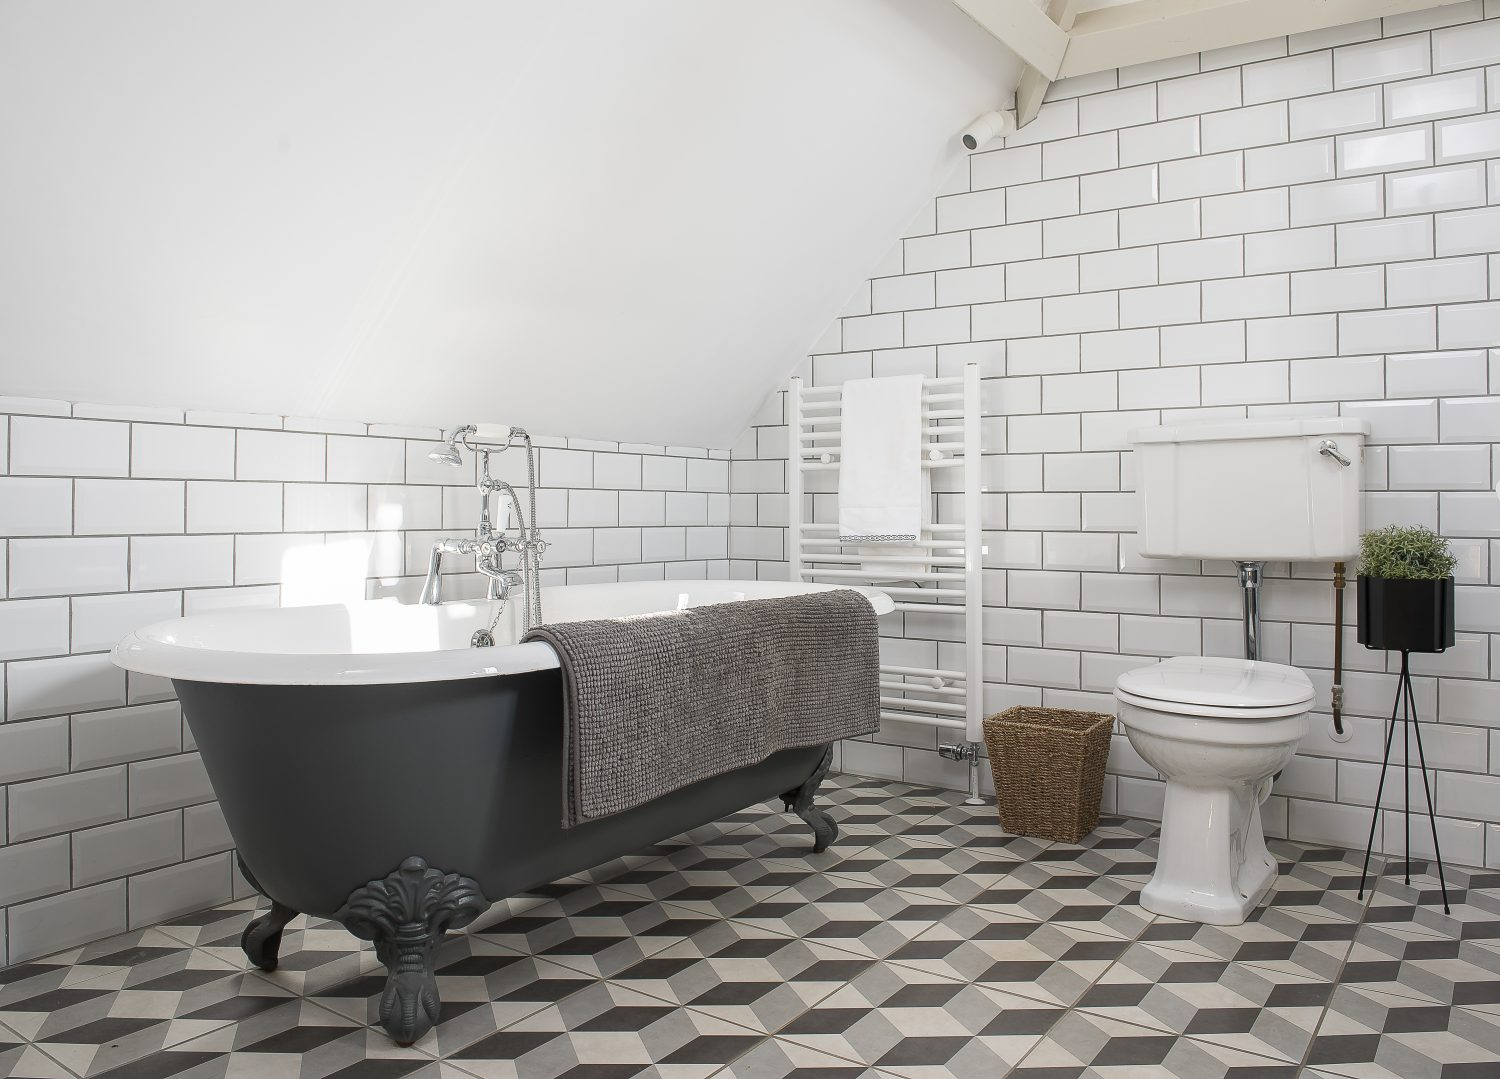 The master bathroom features beautiful geometric floor tiles that complement the matte black roll-top bath